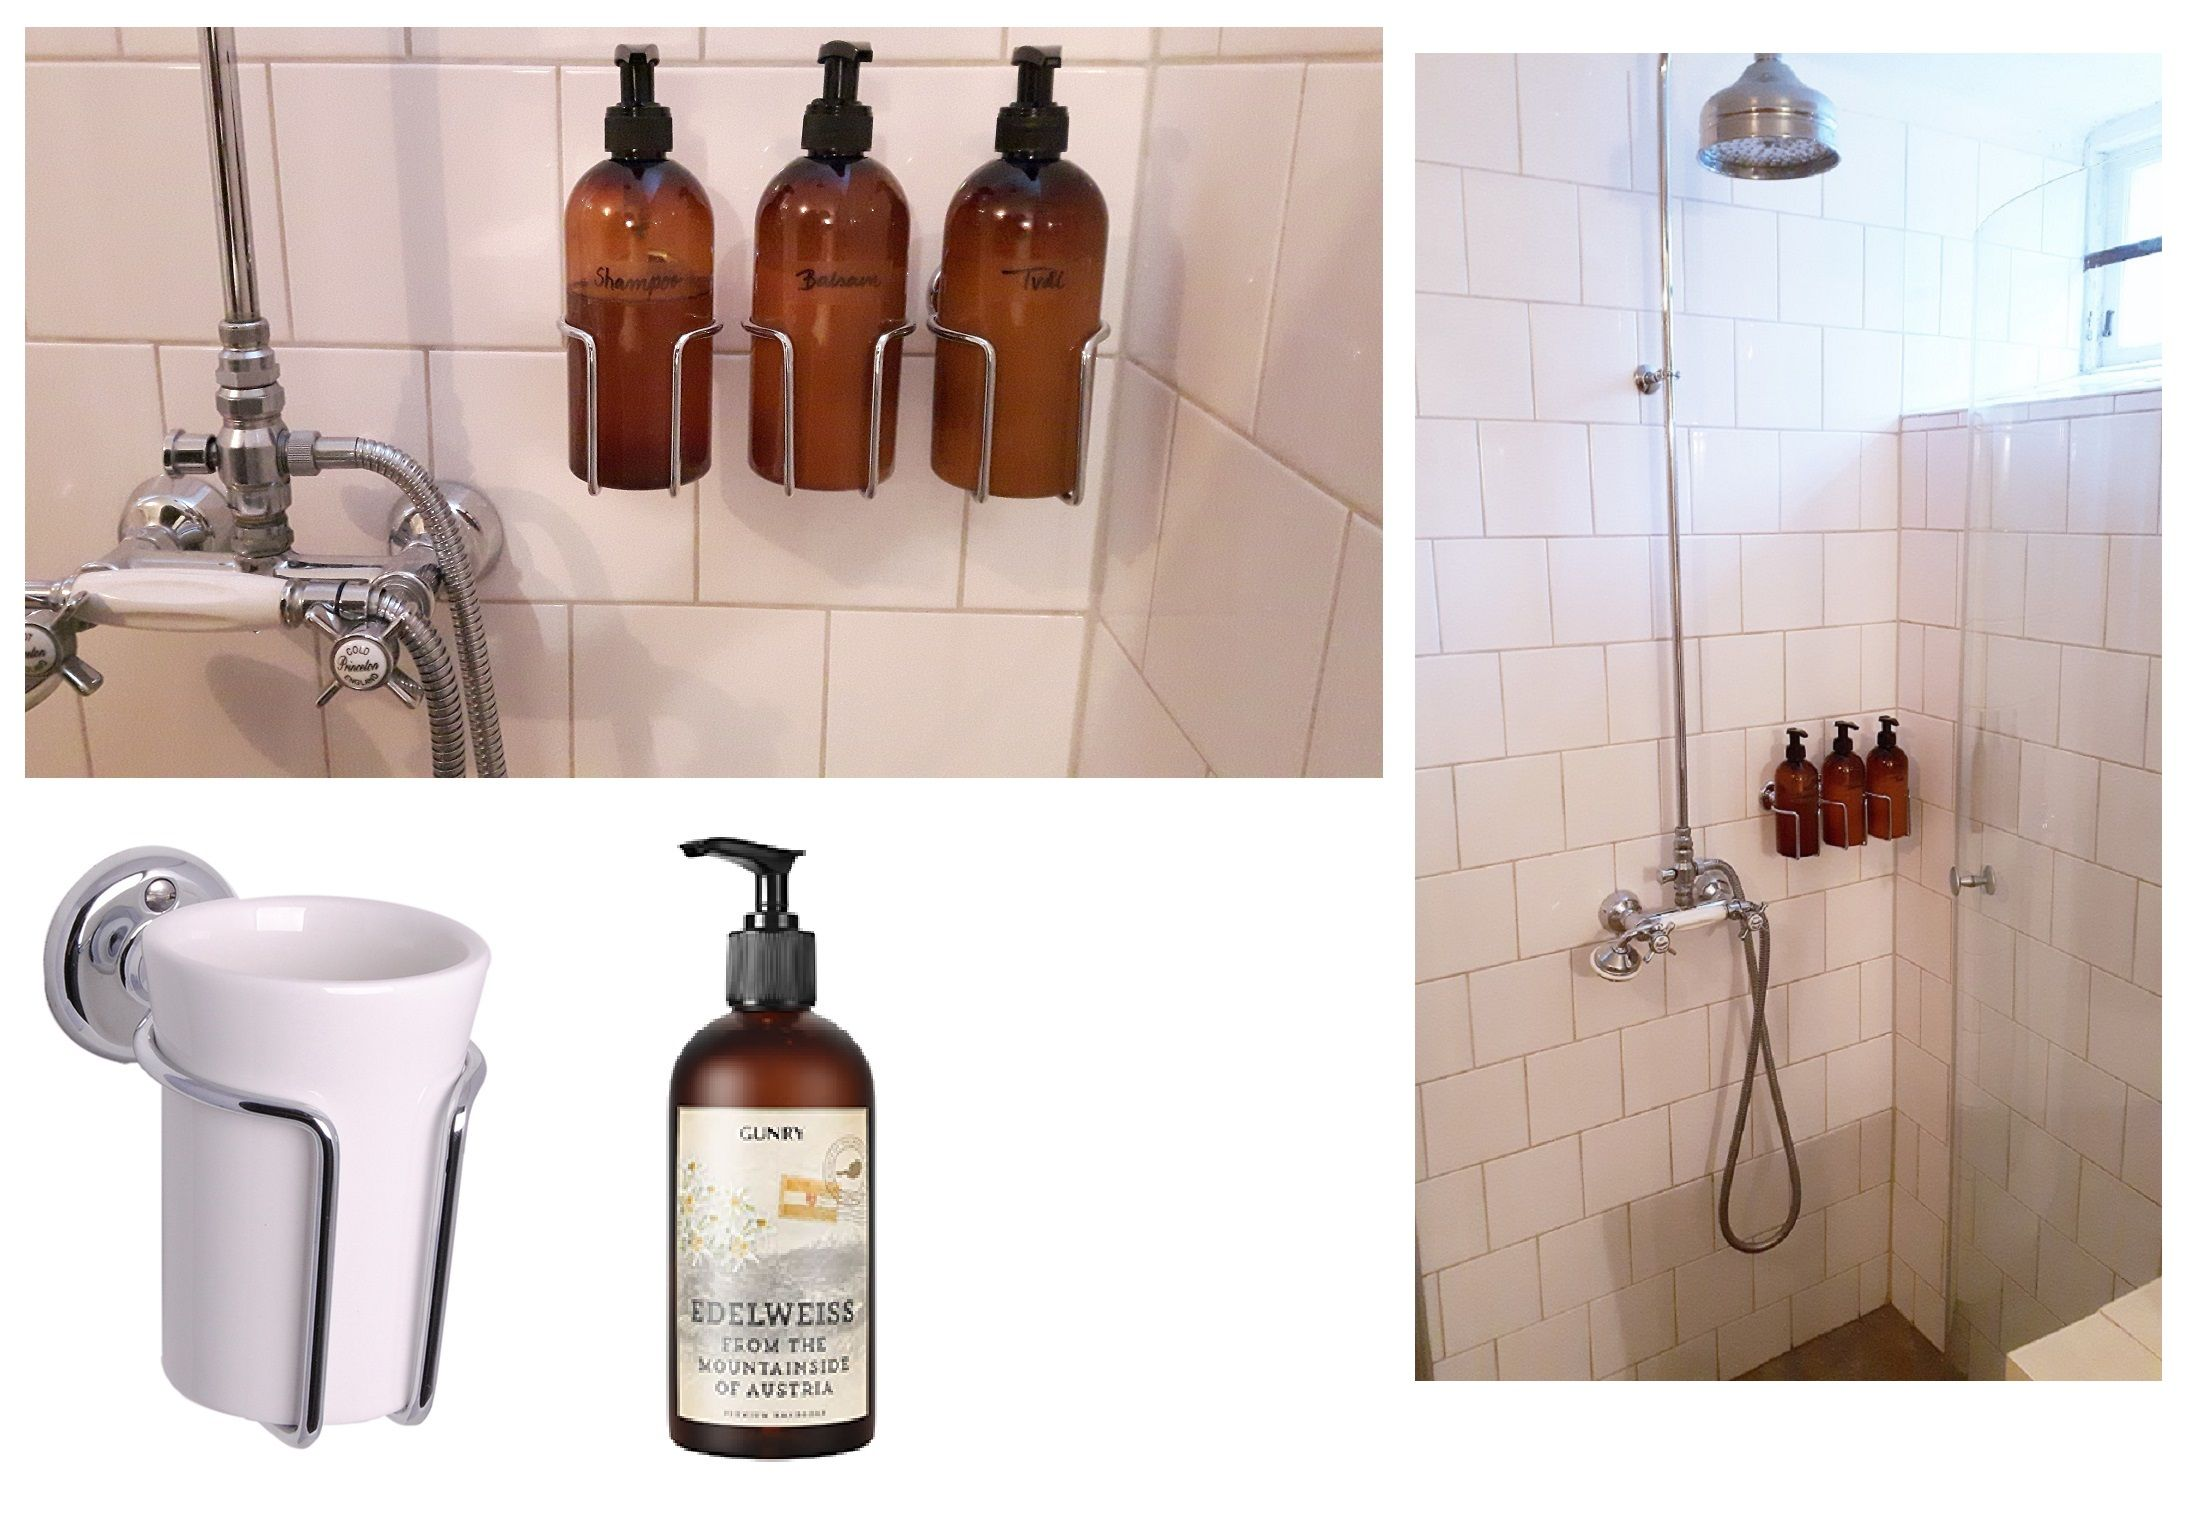 Soap And Shampoo Dispensers For Showers No More Bottles On The Floor In The Shower Wall Mounted